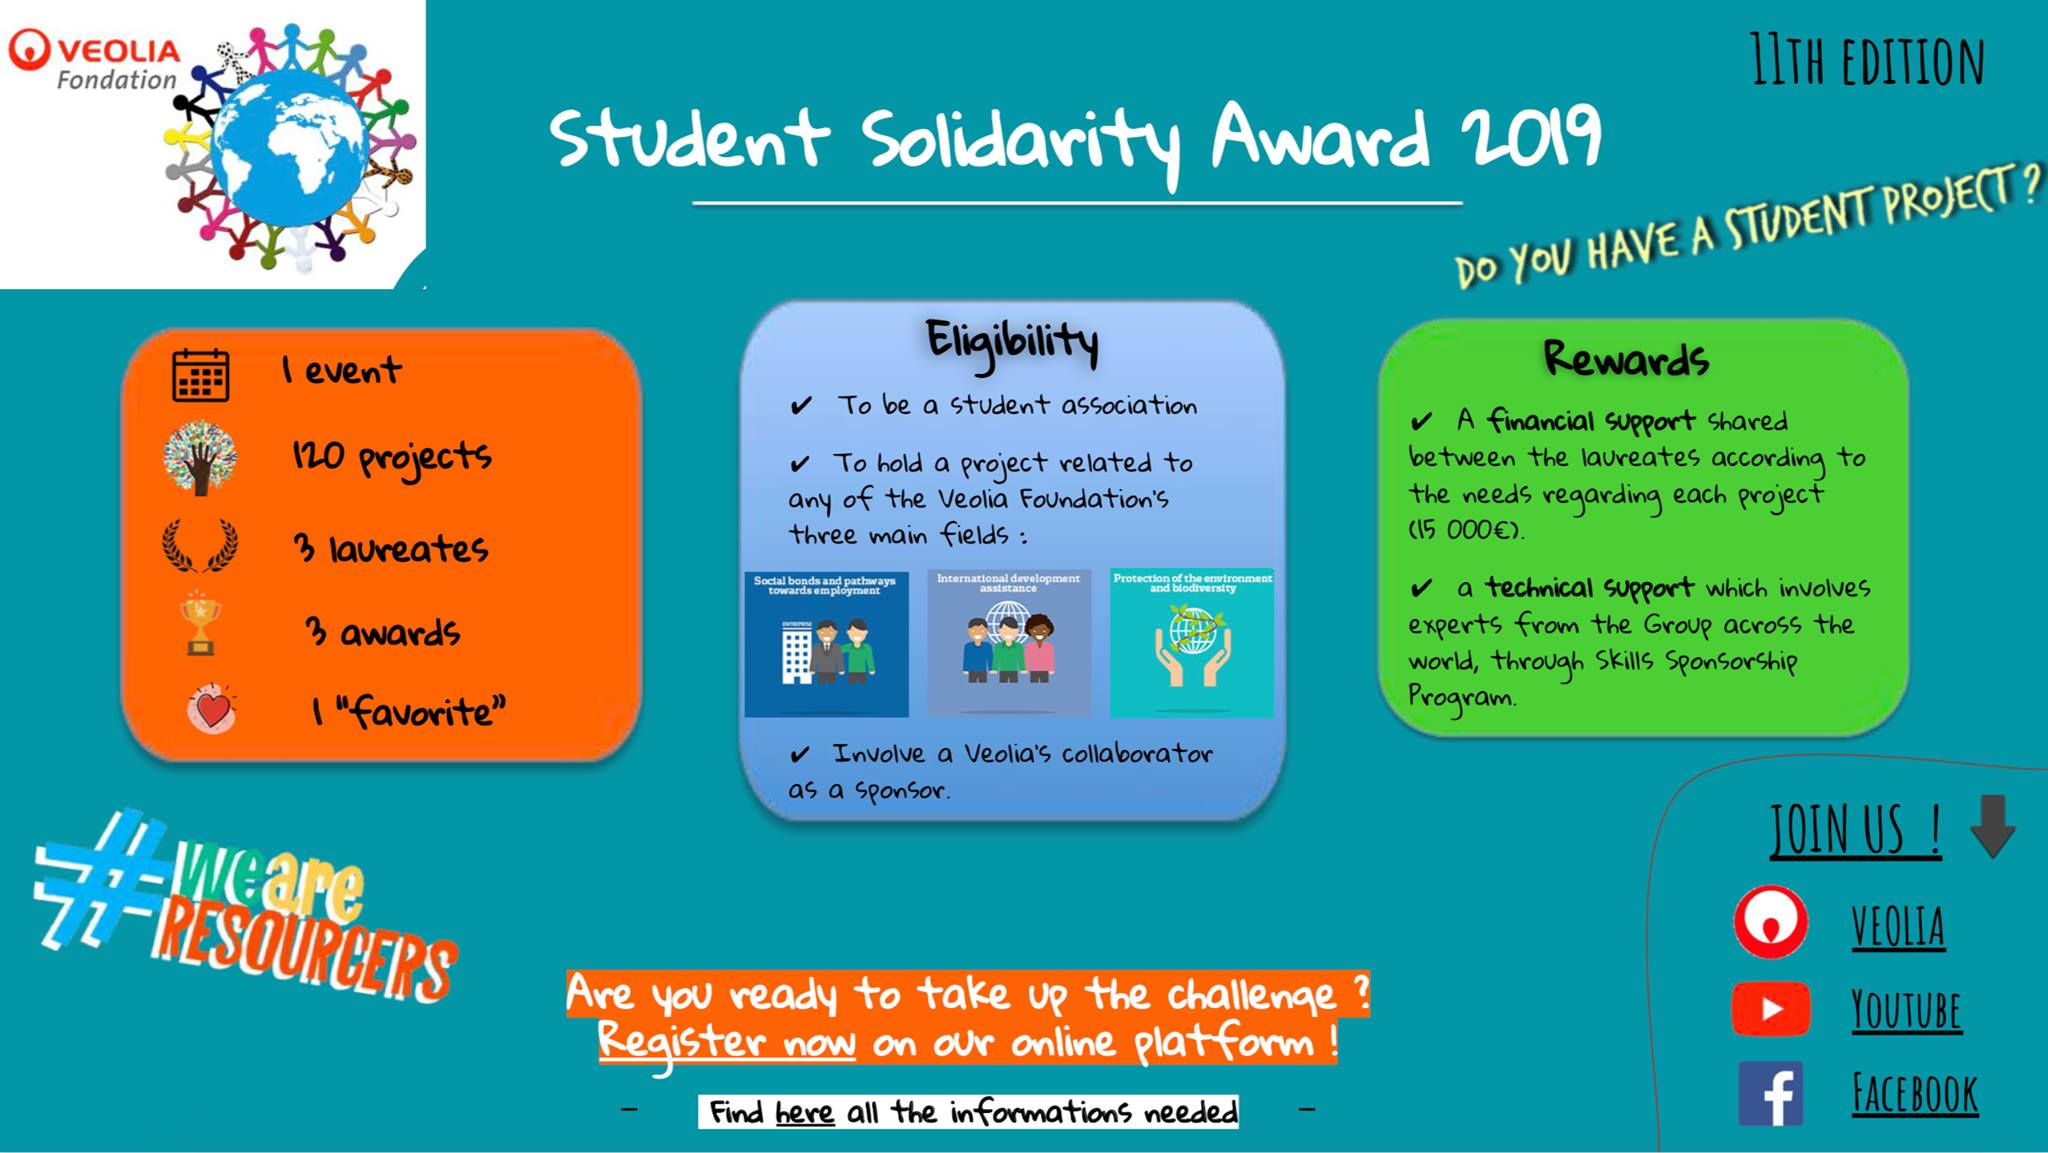 Veolia Foundation Student Solidarity Award 2019 (15,000 Euros)